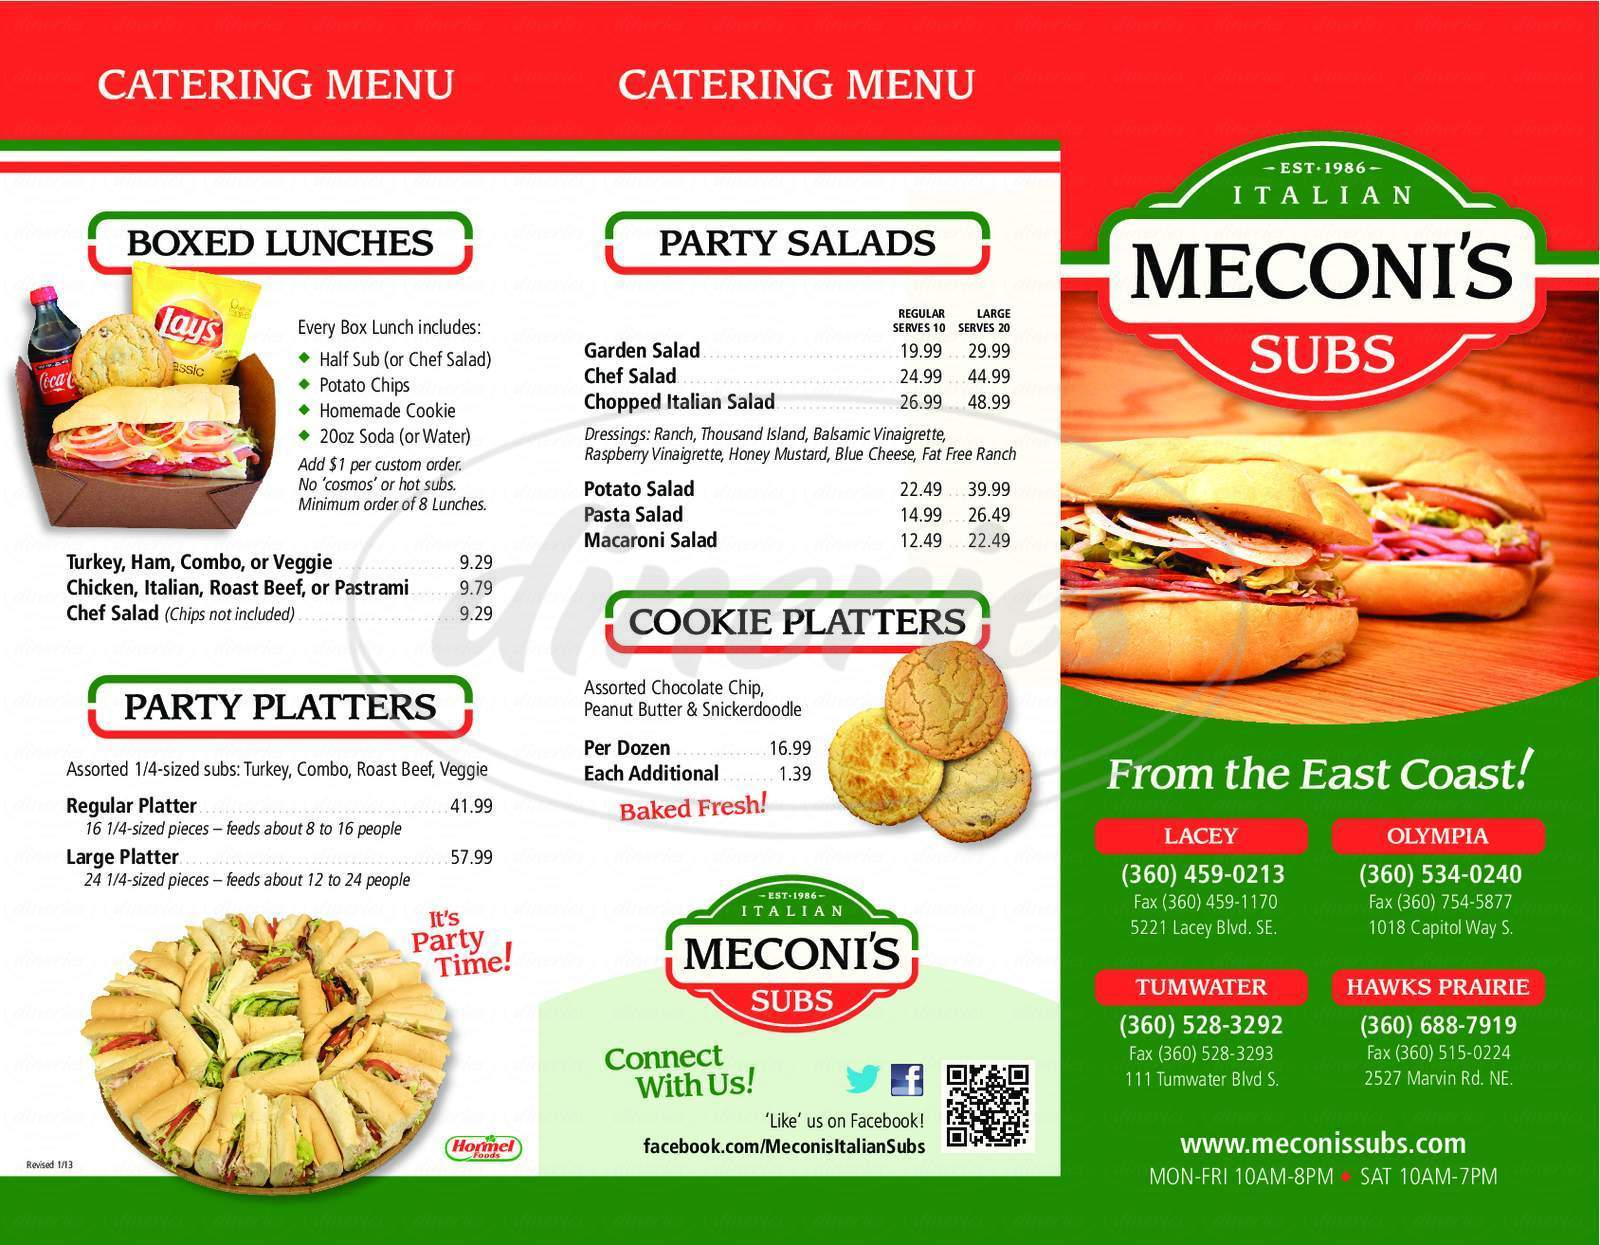 Big menu for Meconi's Italian Subs, Lacey